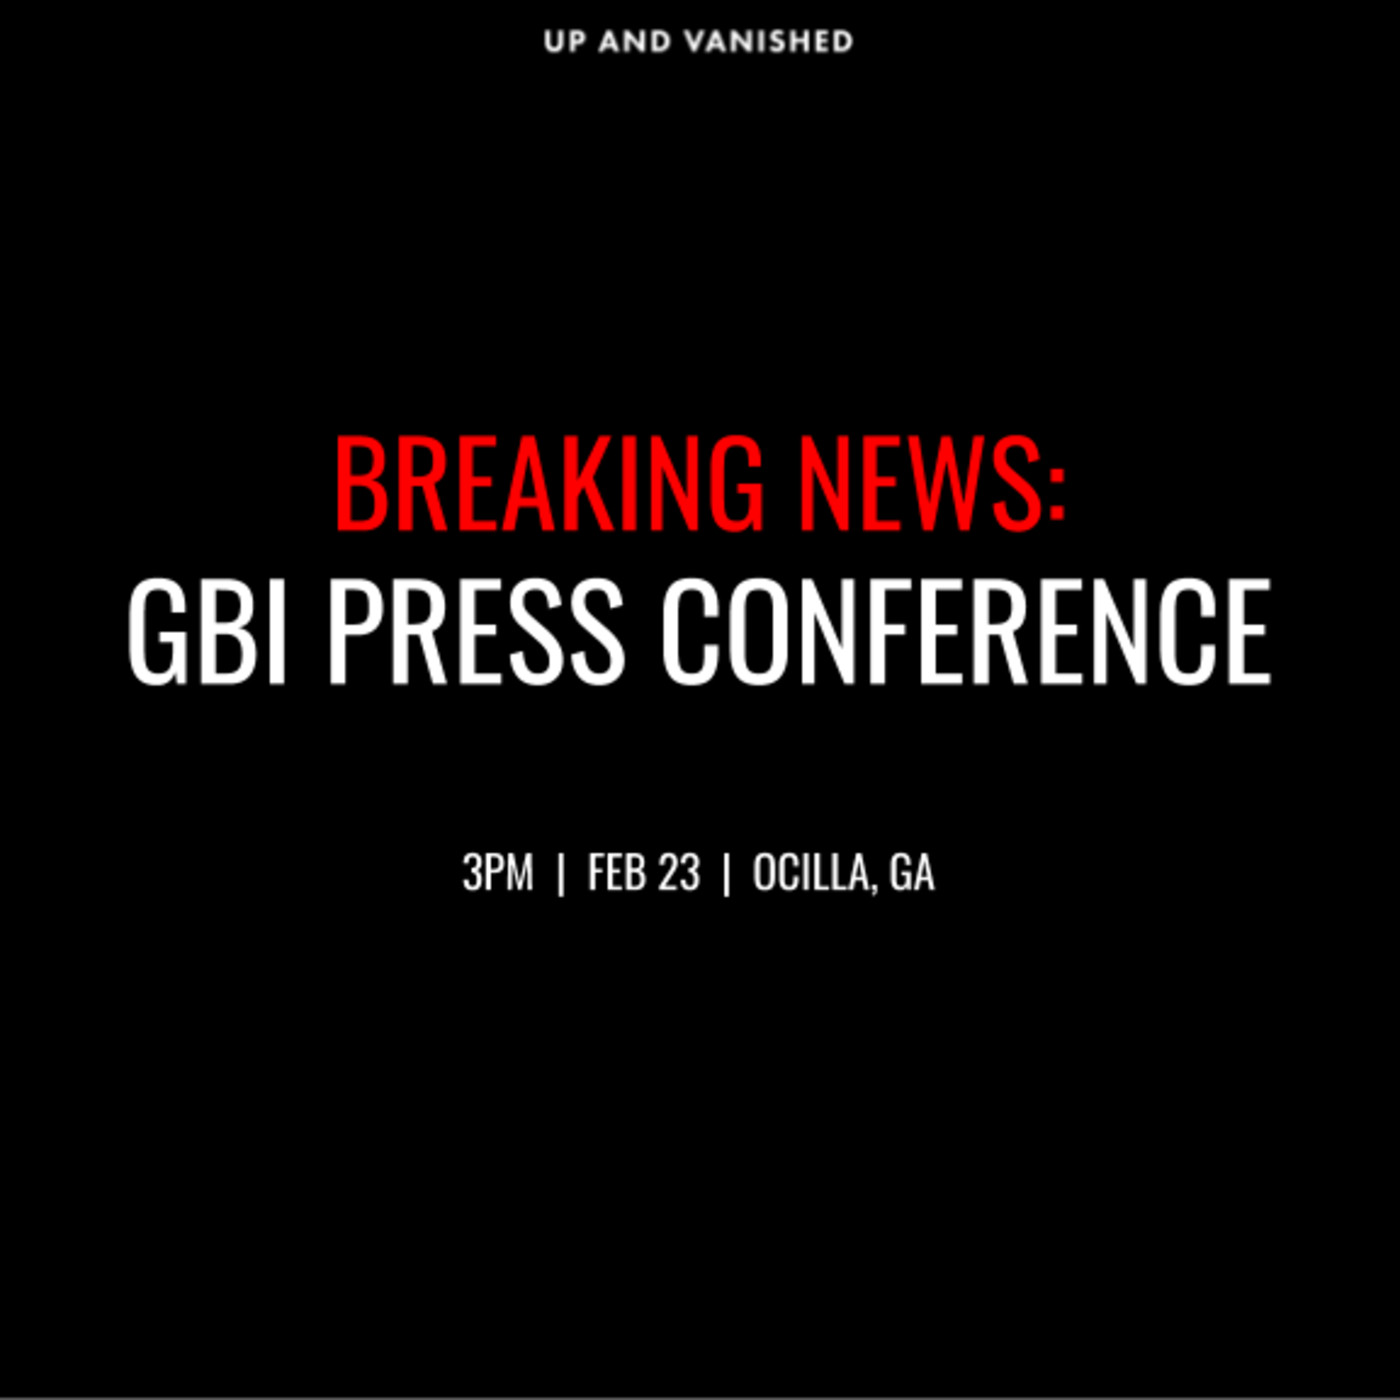 BREAKING NEWS: GBI Press Conference